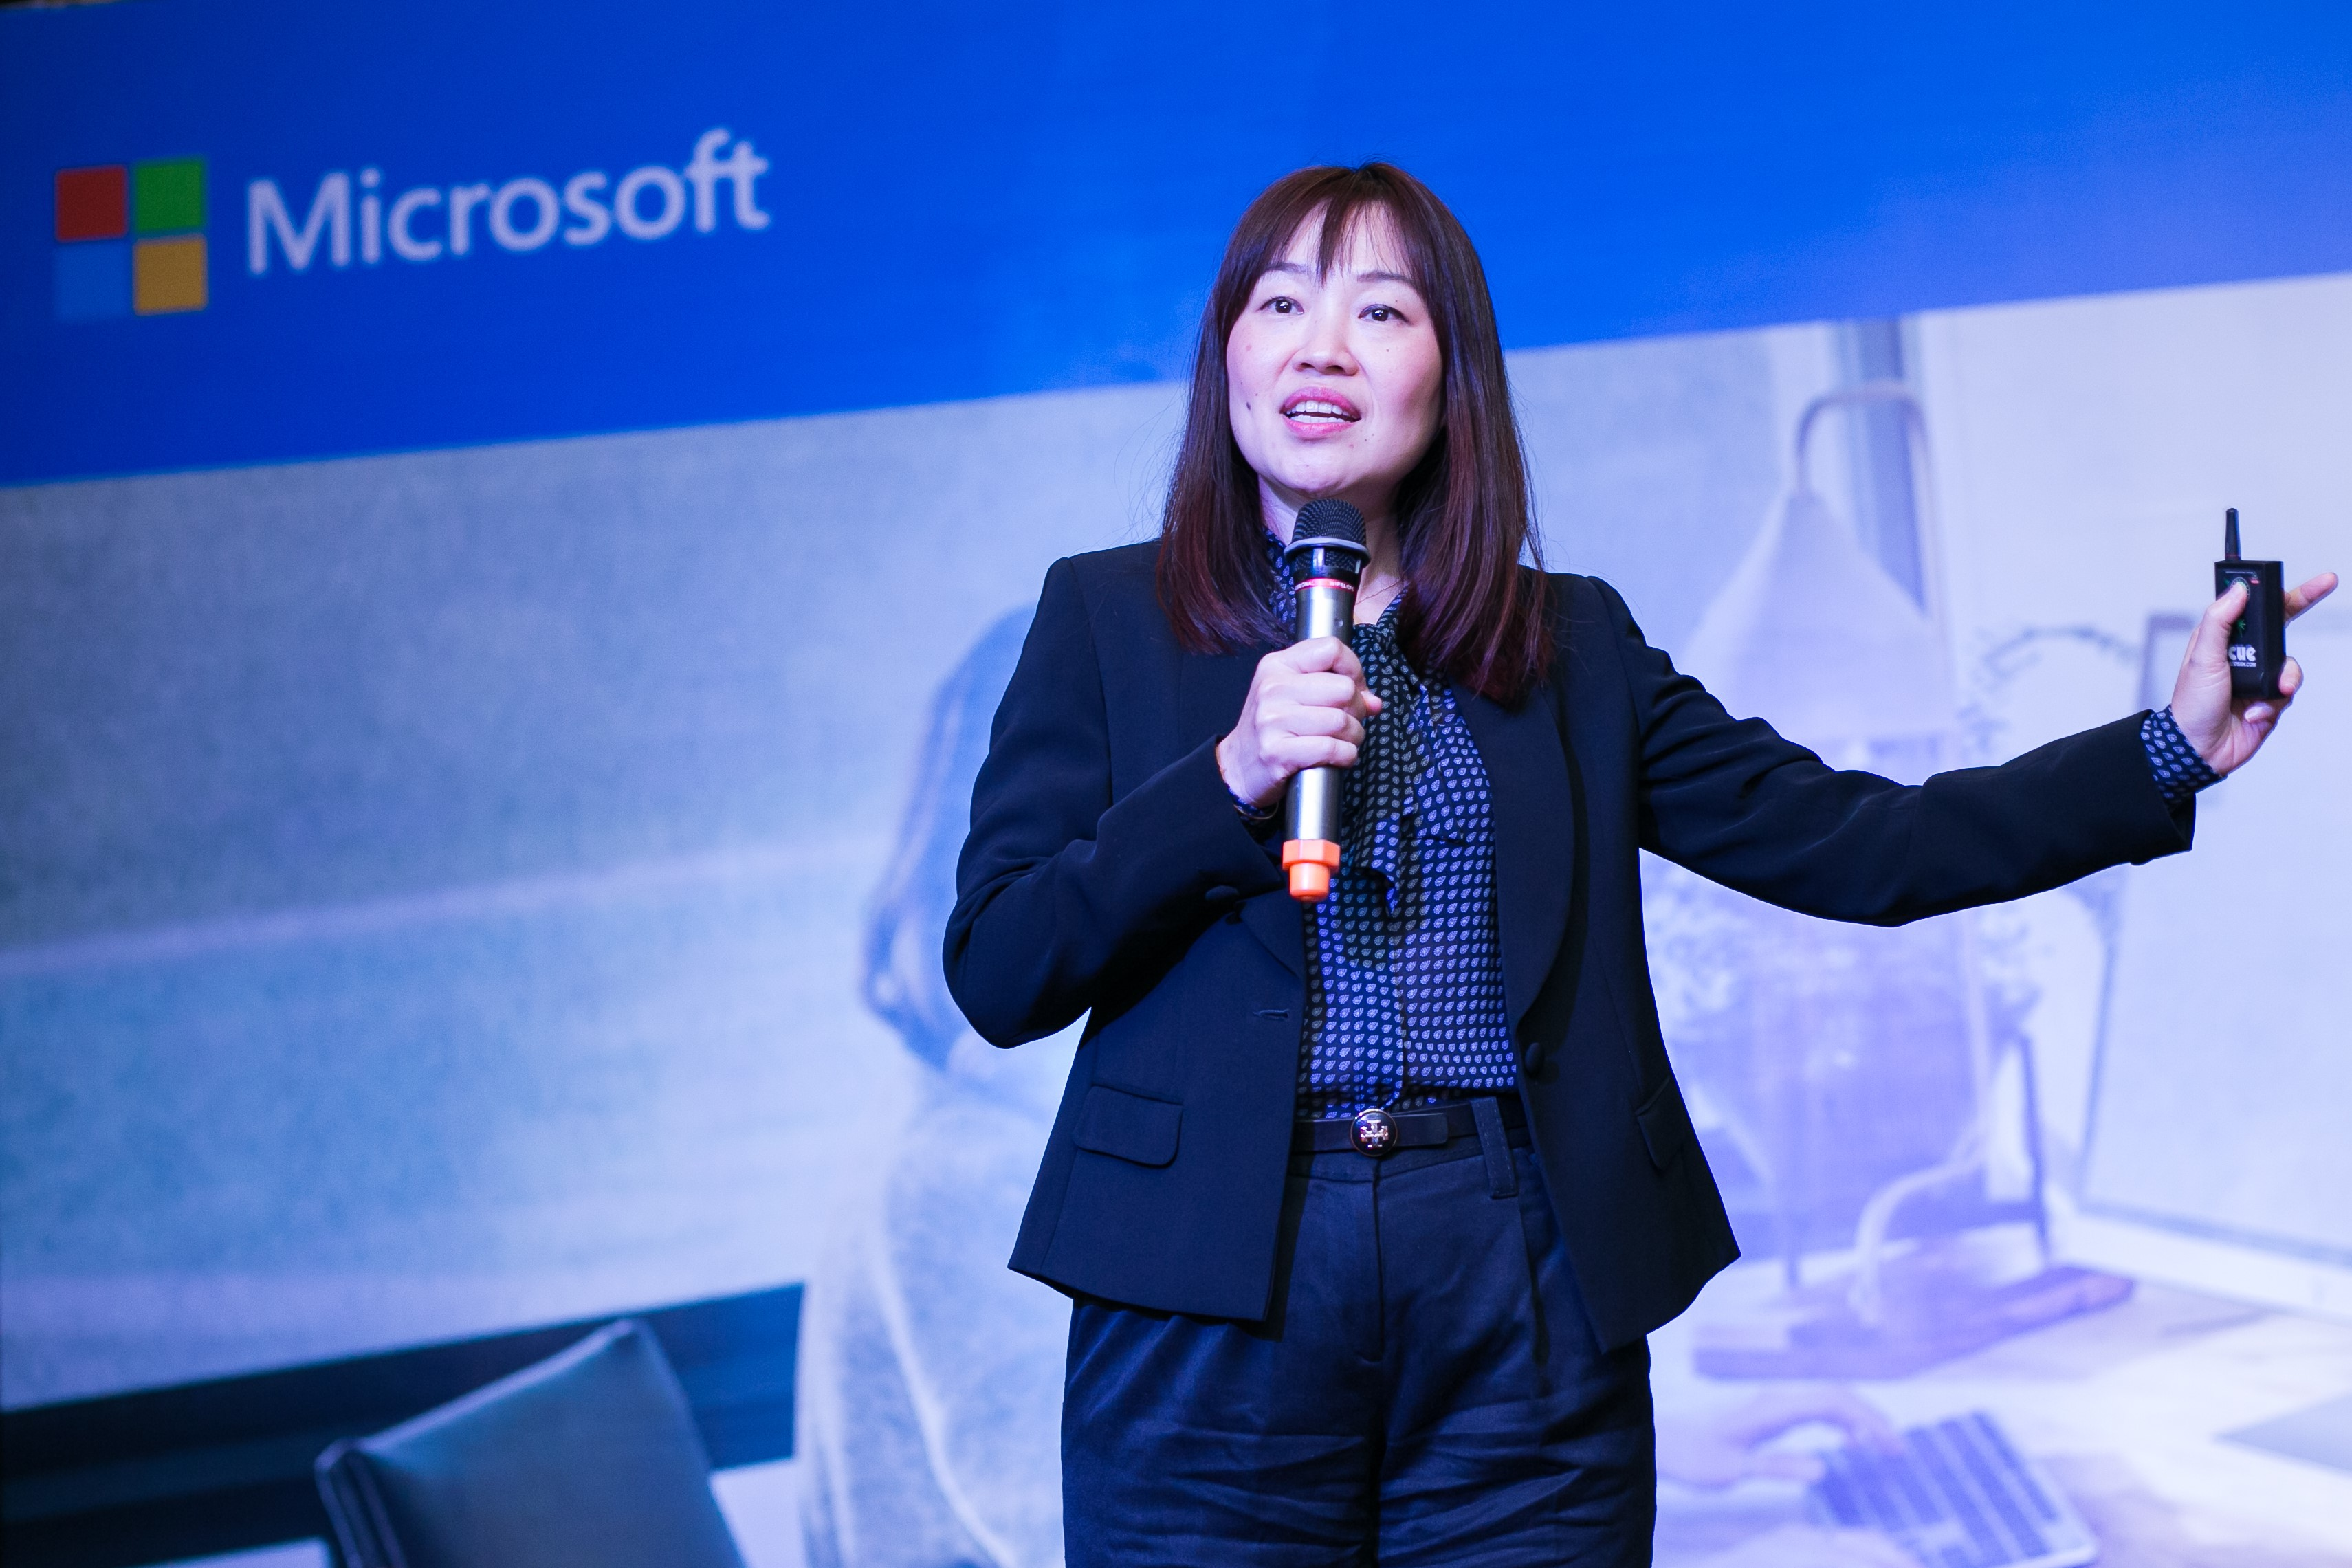 Microsoft 365 brings Security, Productivity and Mobility to enterprises in Cambodia - Asia News Center